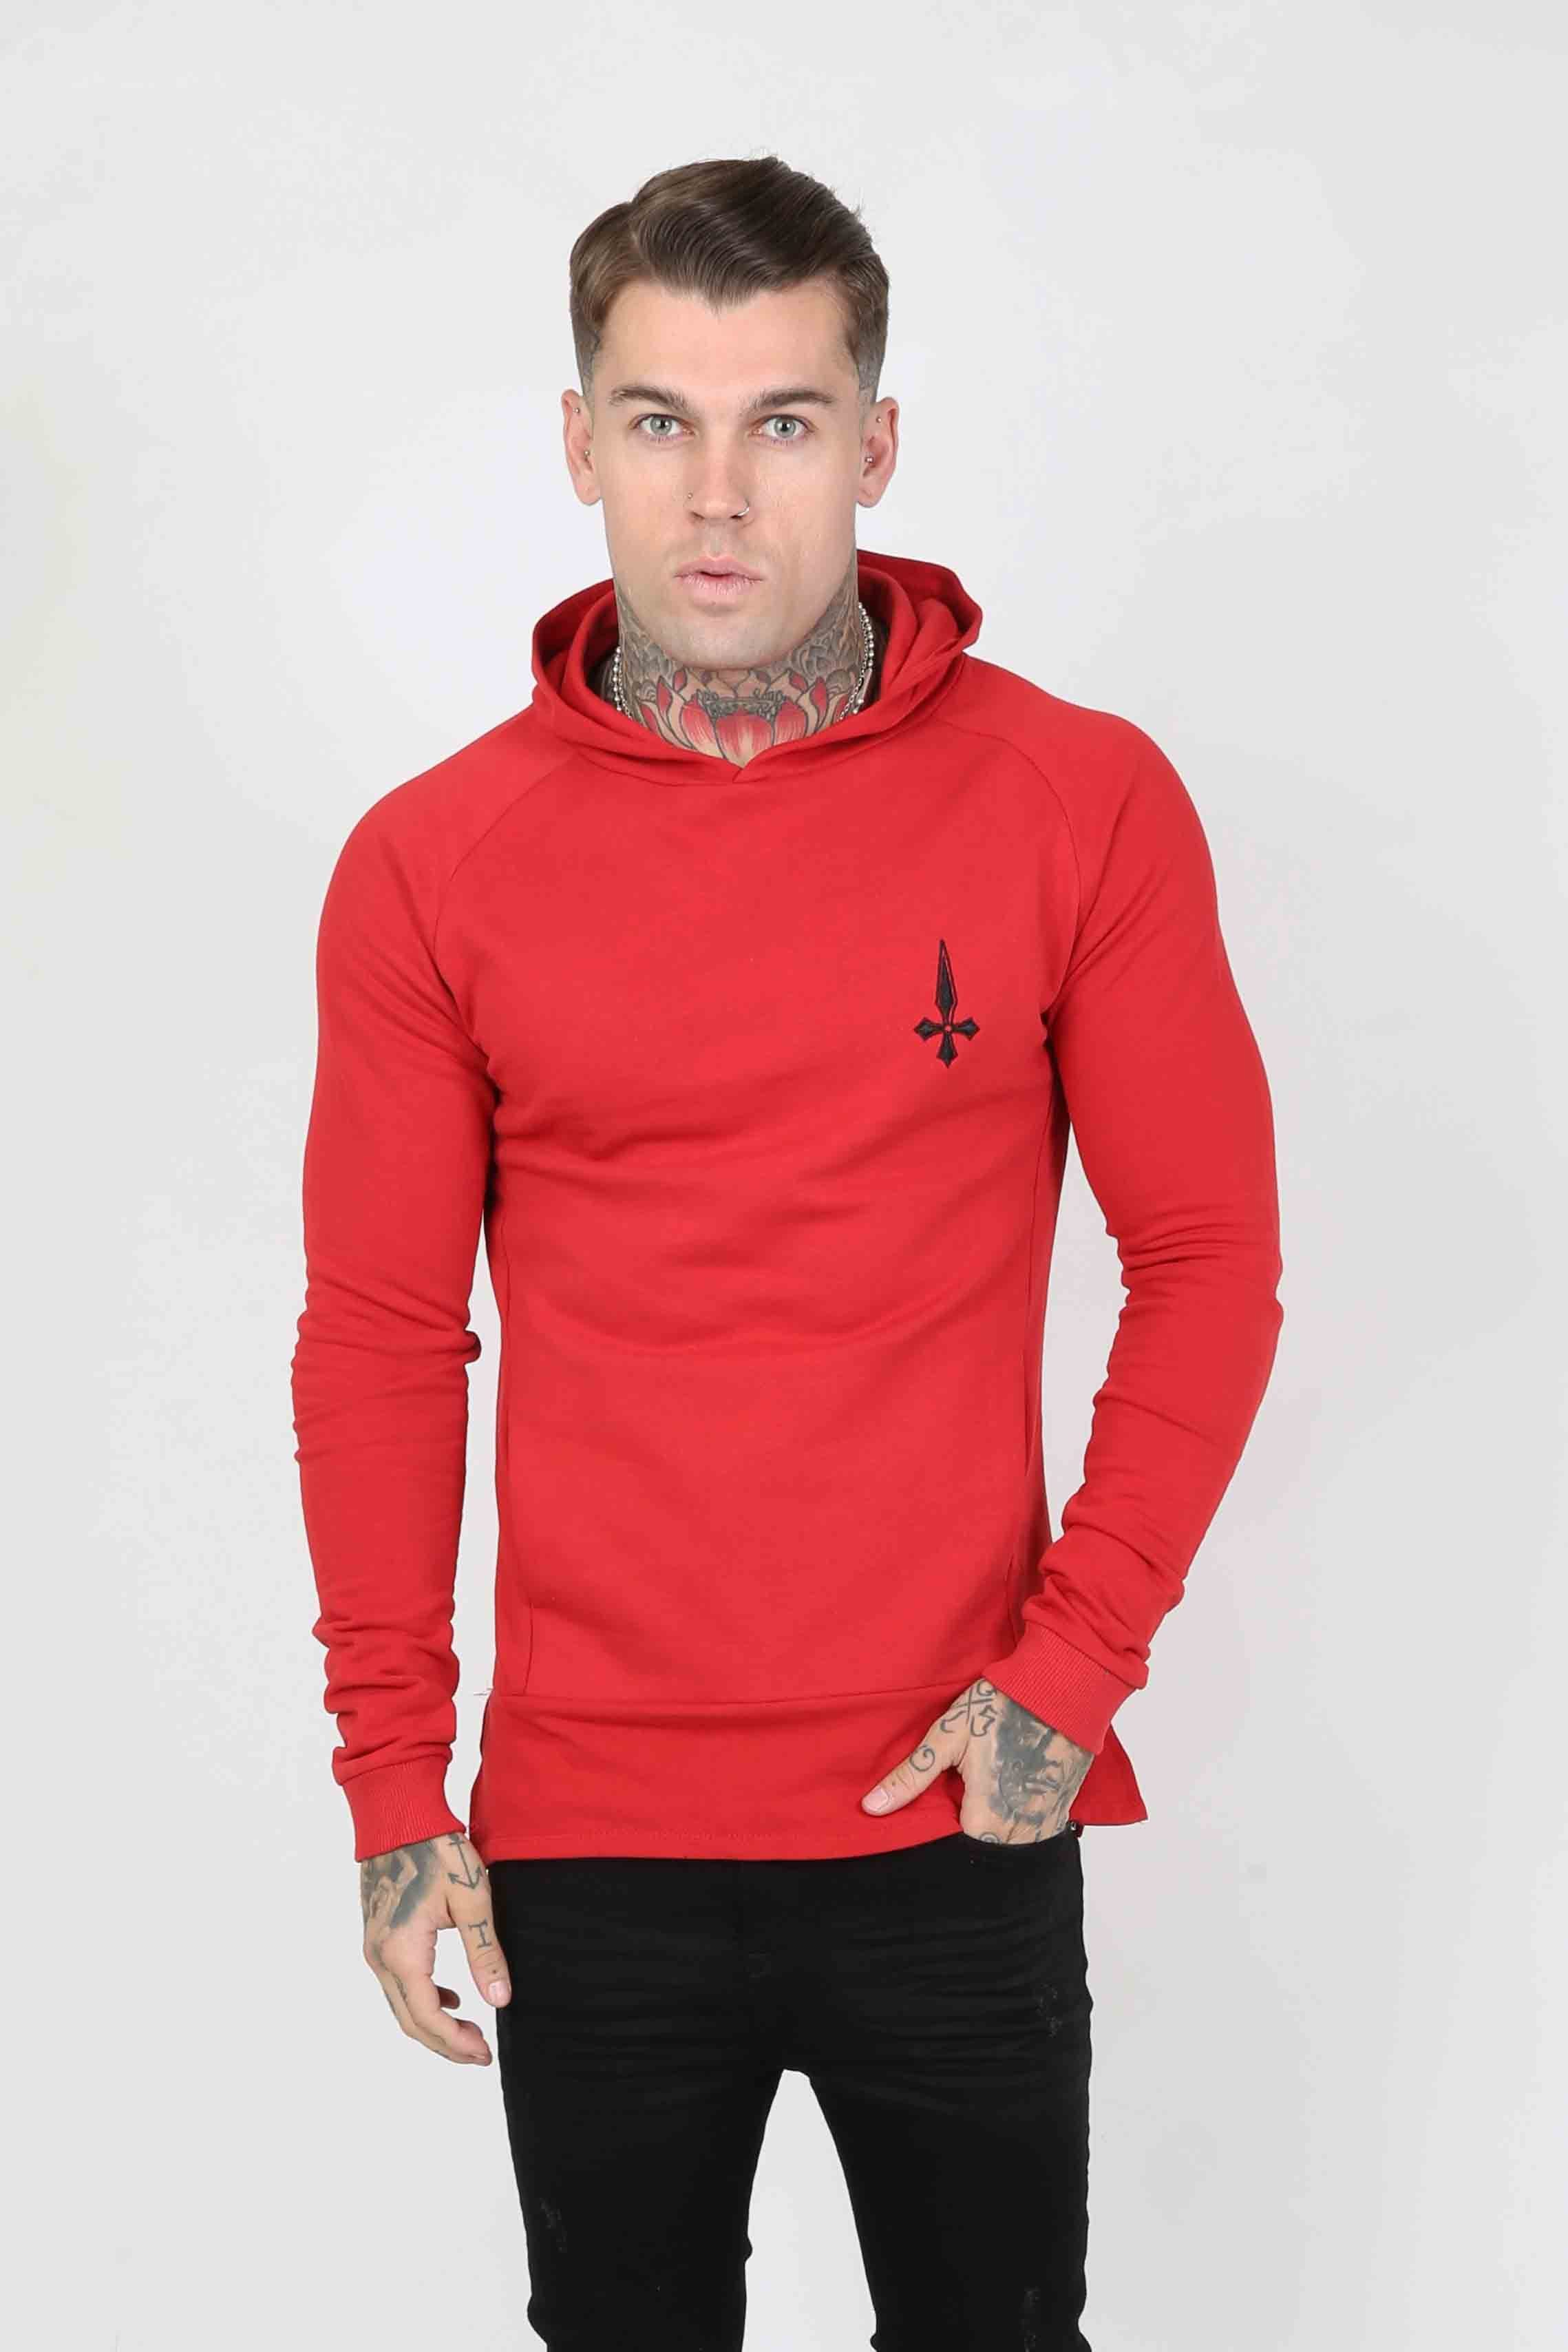 Sniper Men's Hoodie - Red, Small